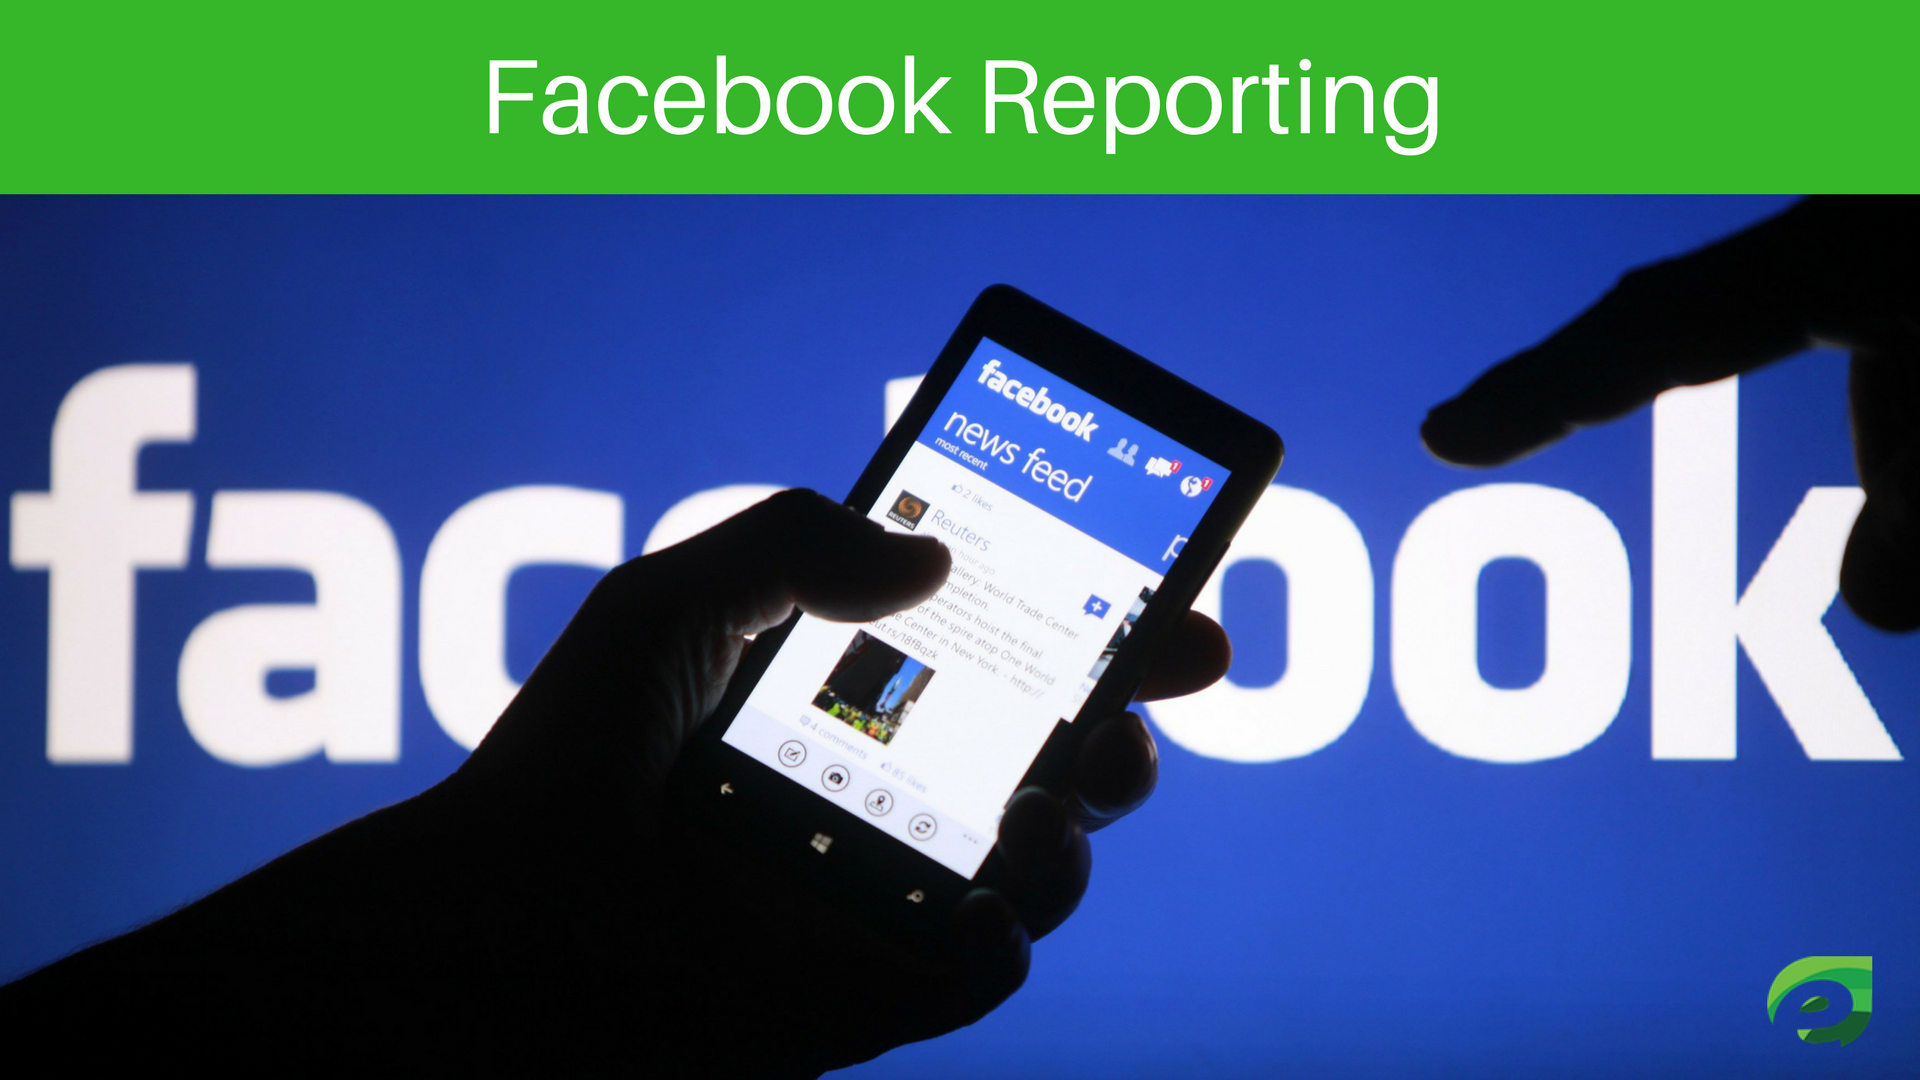 Facebook Reporting - How Facebook Works